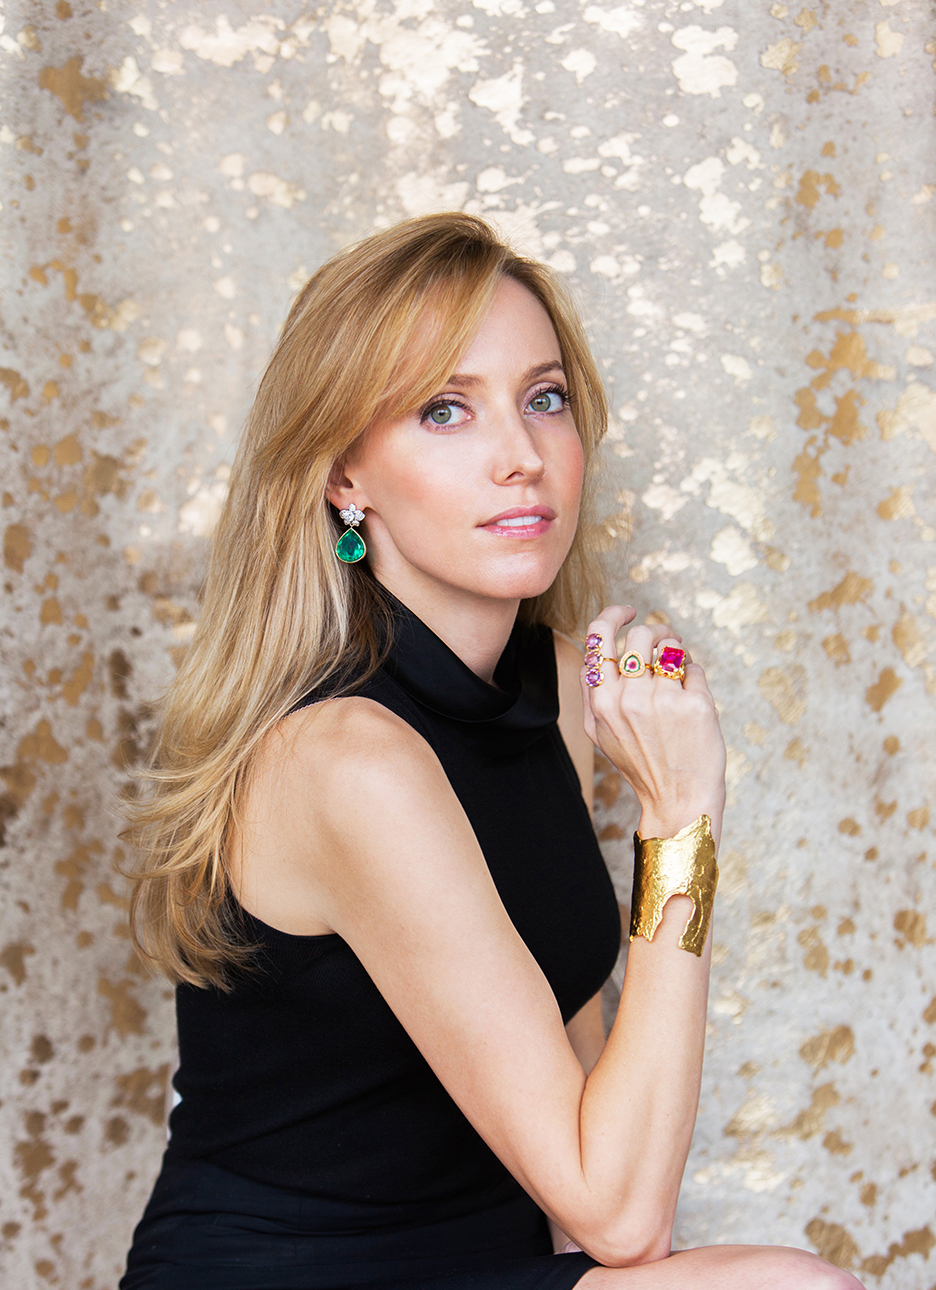 Caption: Suz Somersall, founder KiraKira